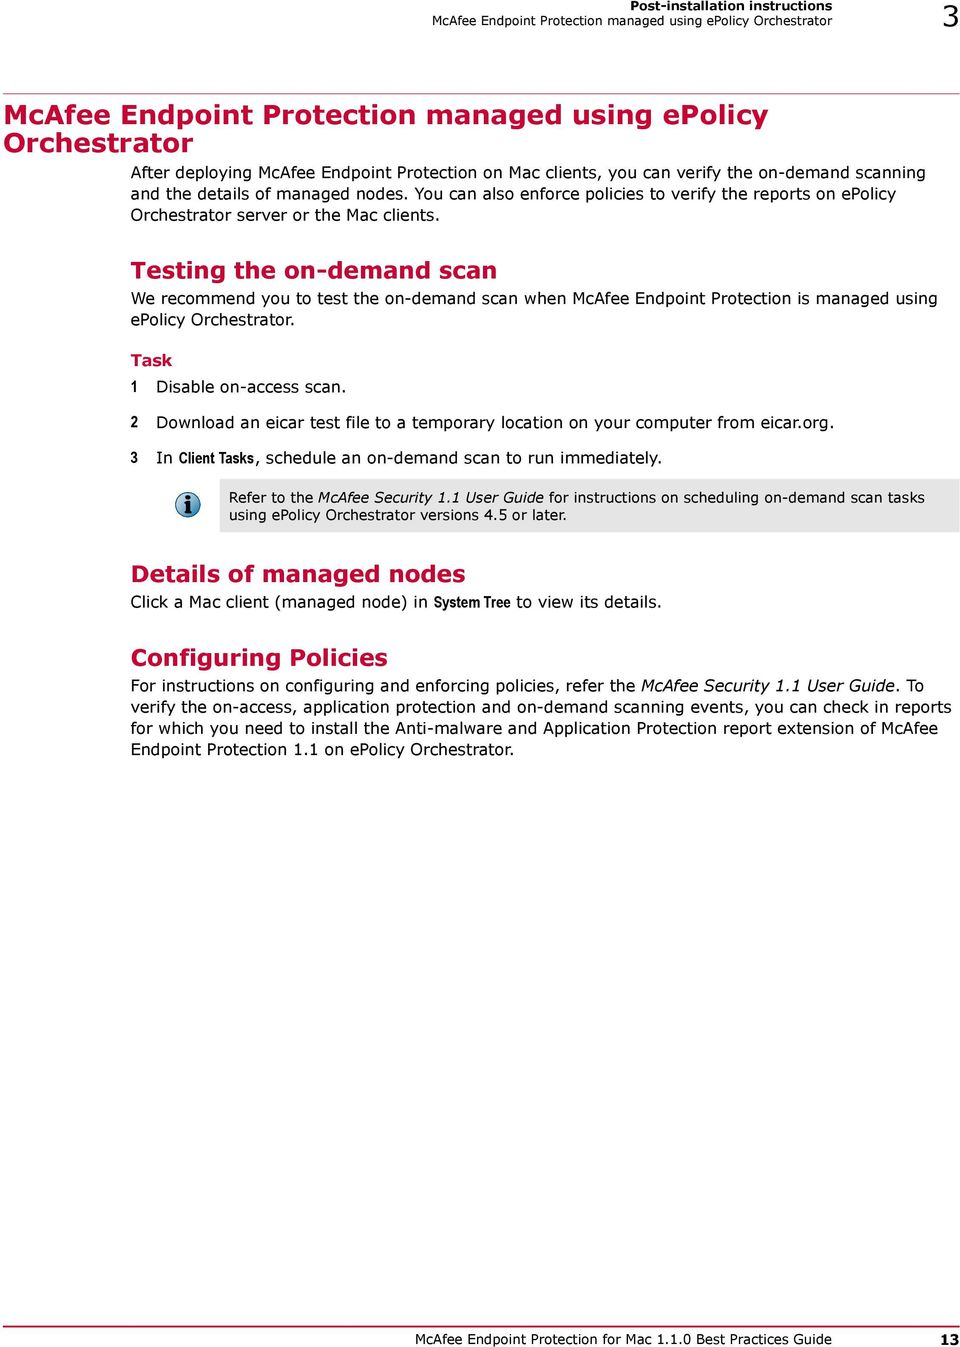 Best Practices Guide  McAfee Endpoint Protection for Mac PDF